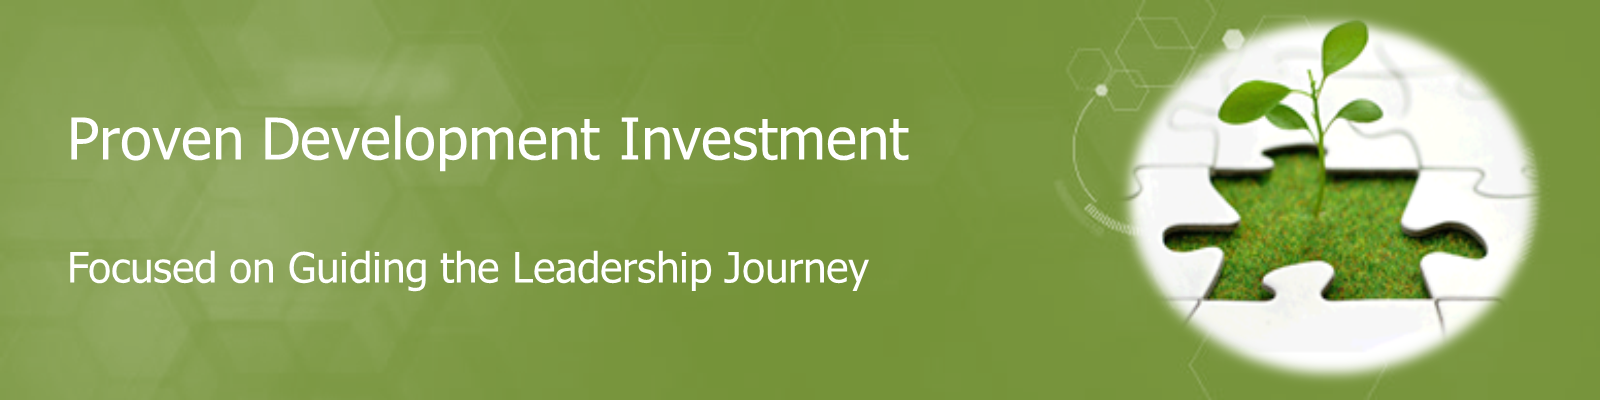 Proven Development Coaching an Investment Focused on Guiding the leadership journey.